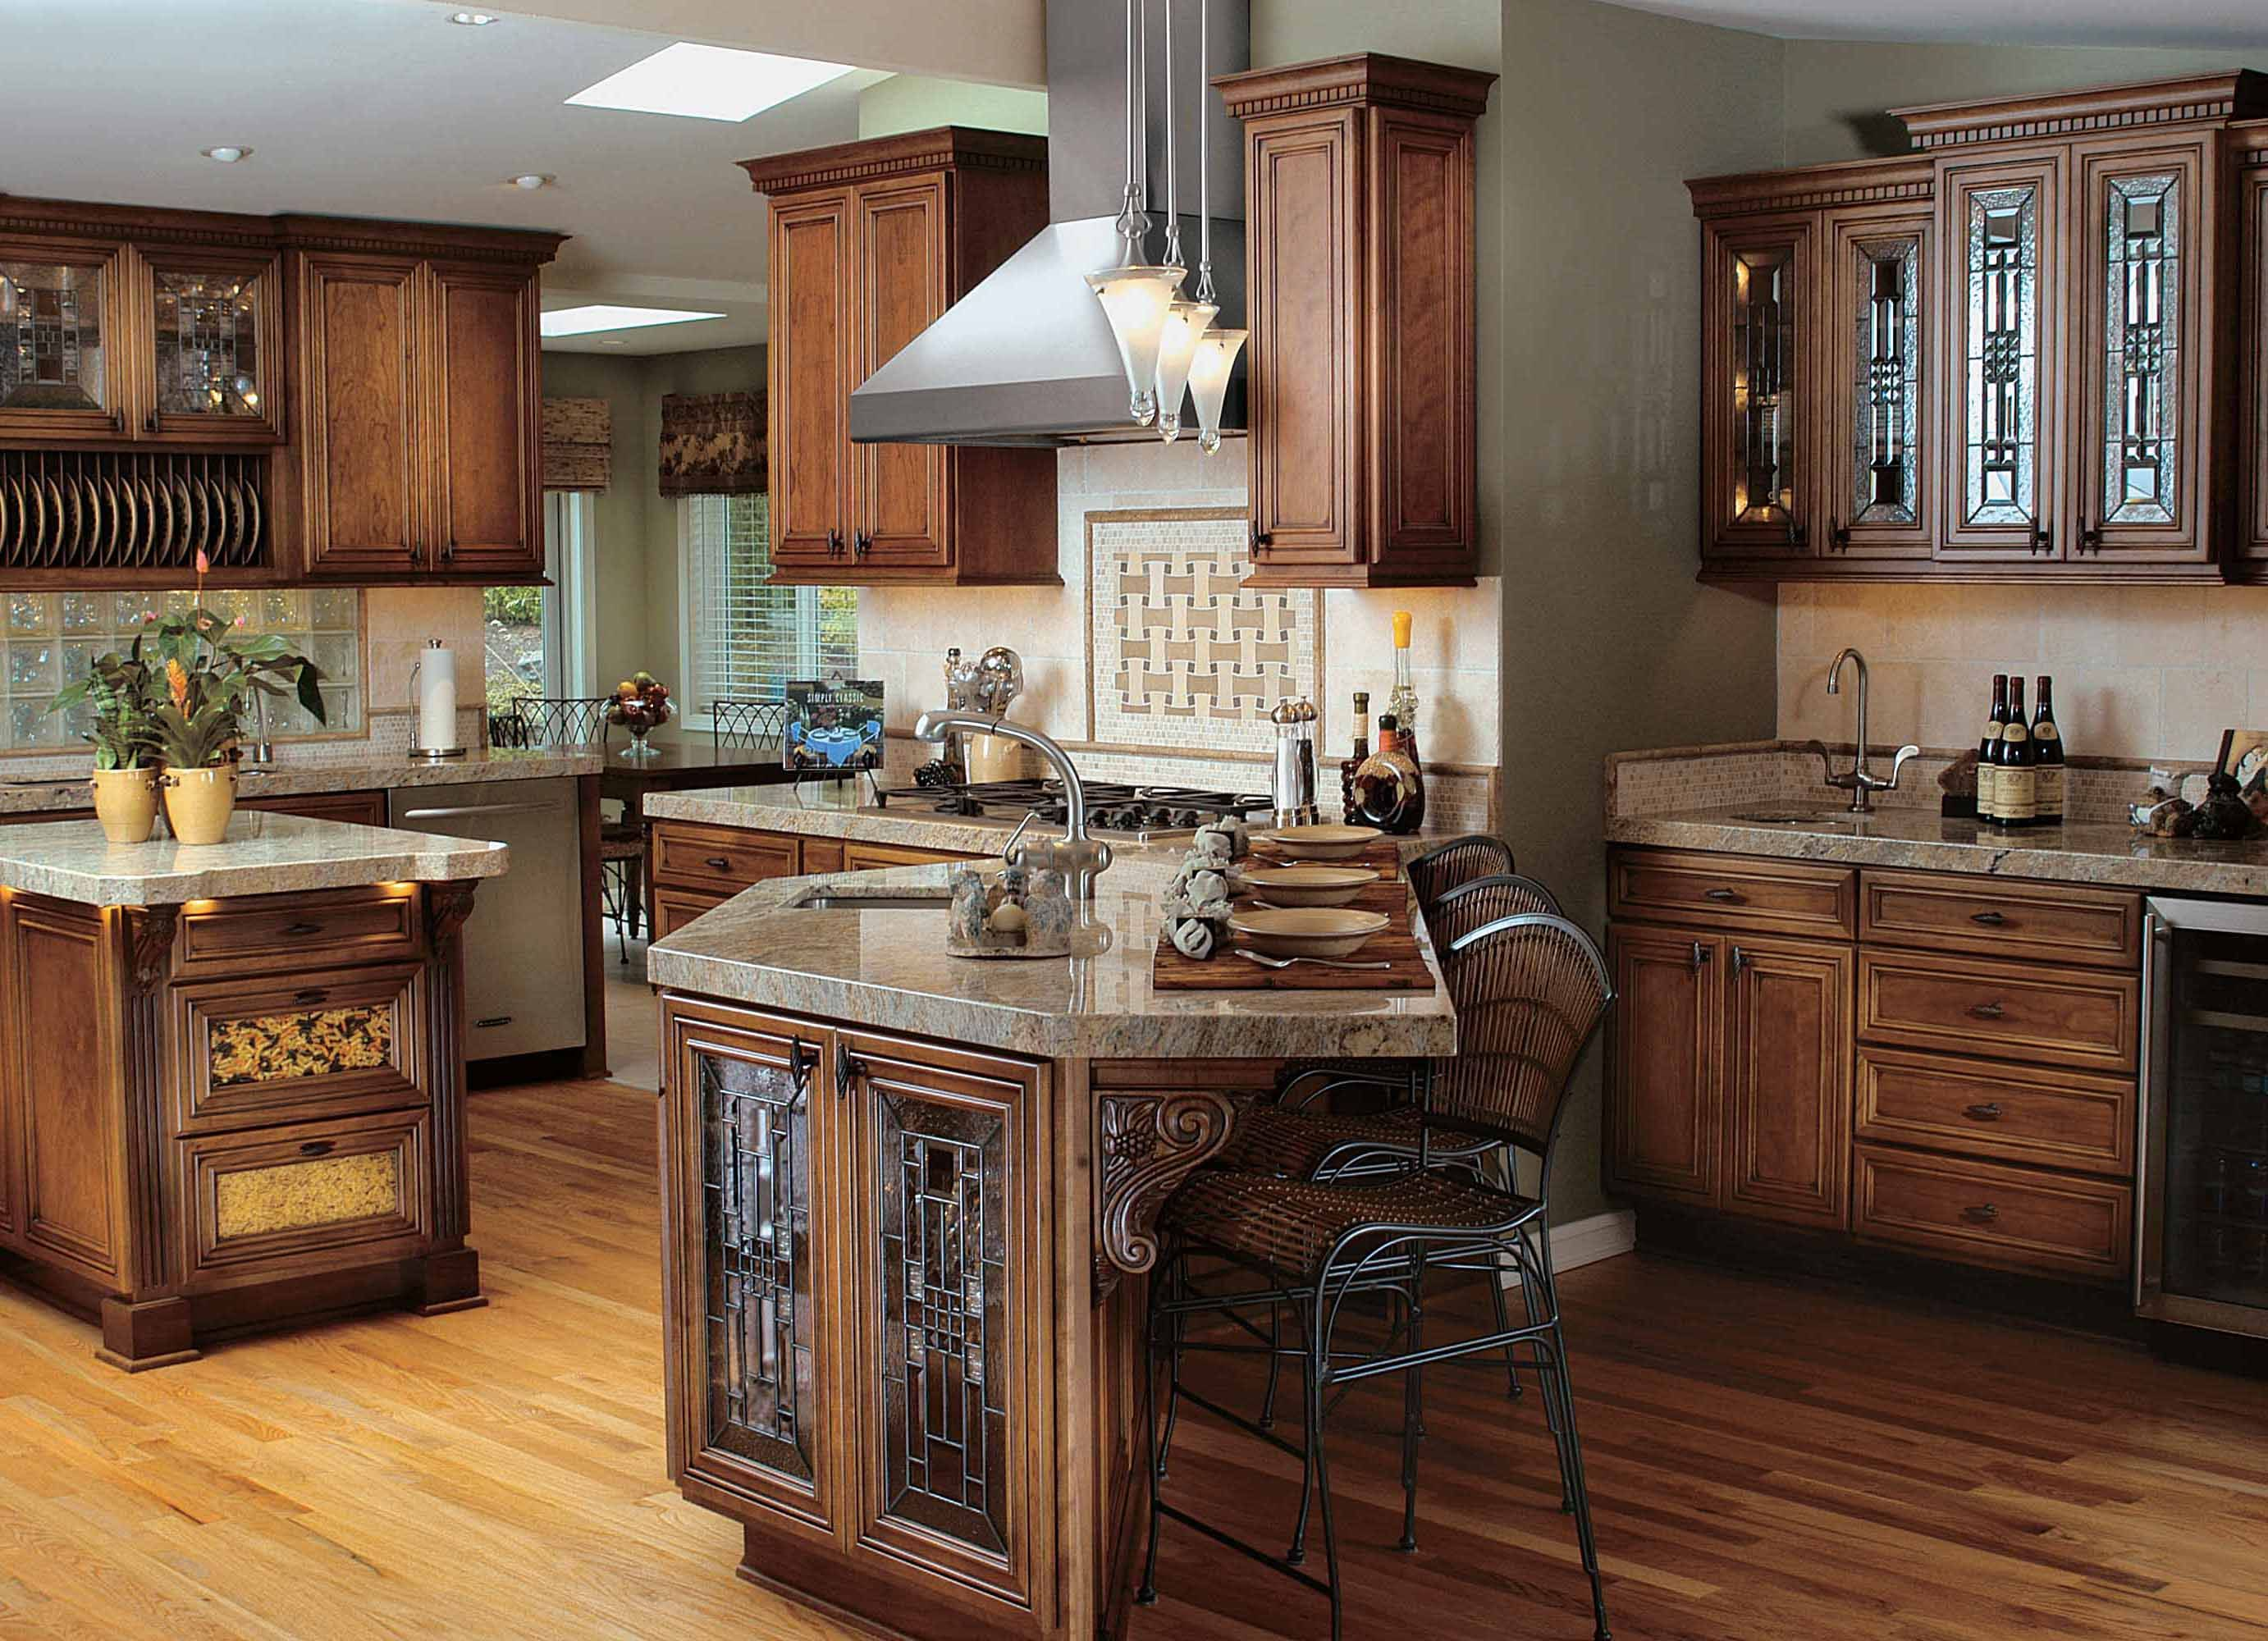 Custom Rustic Kitchen Cabinets Image Result For Gray Countertop And Brown Cabinets  Countertop